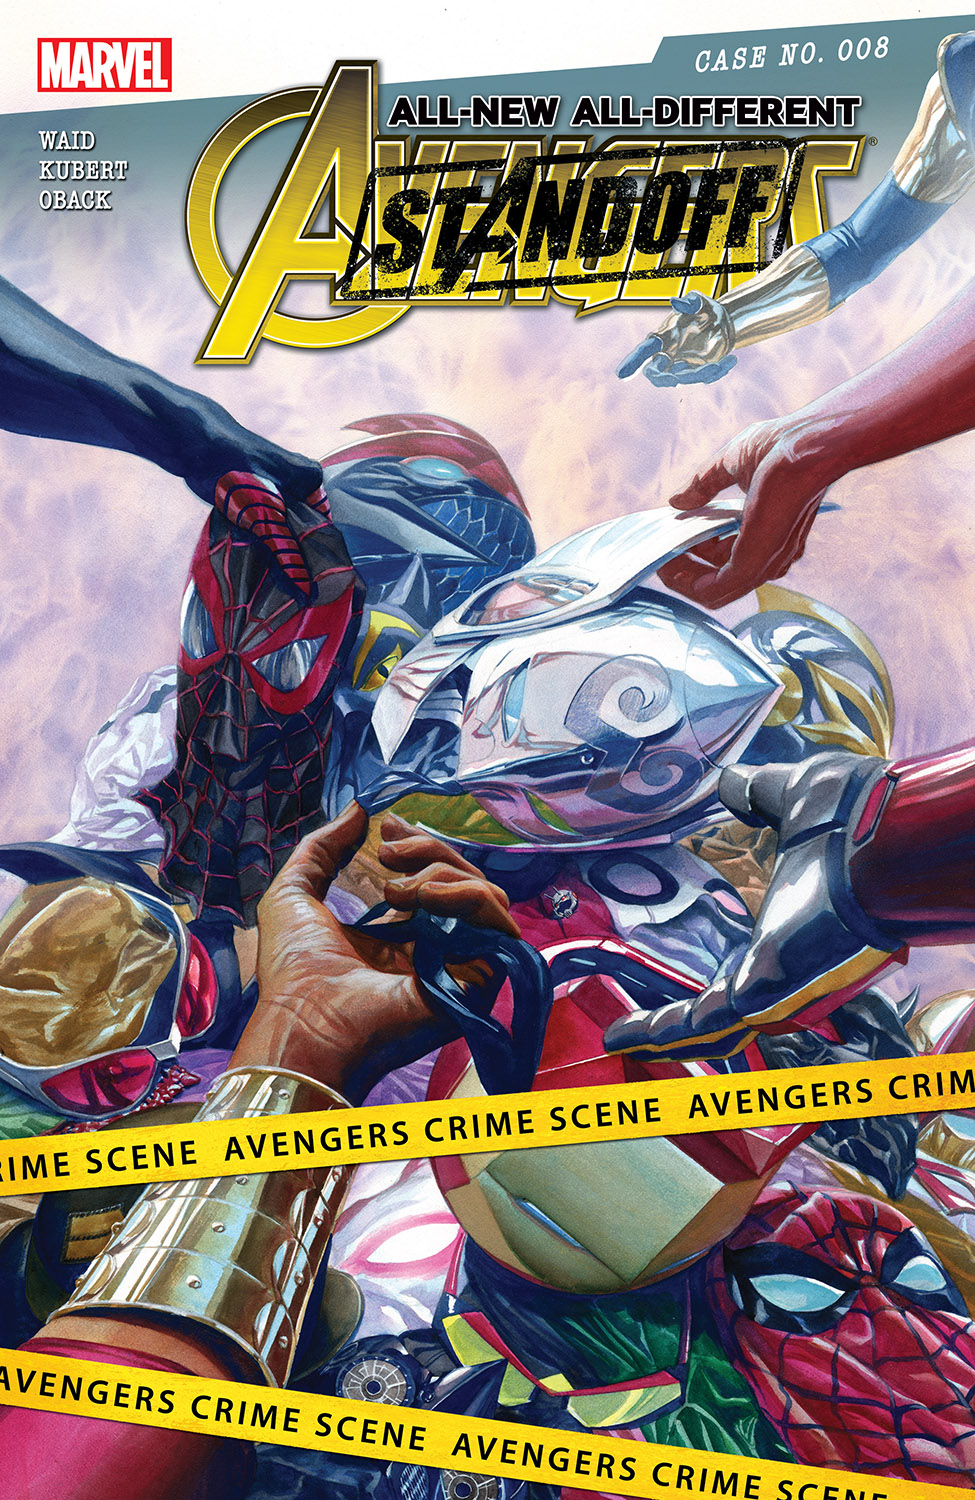 All-New, All-Different Avengers (2015) #8